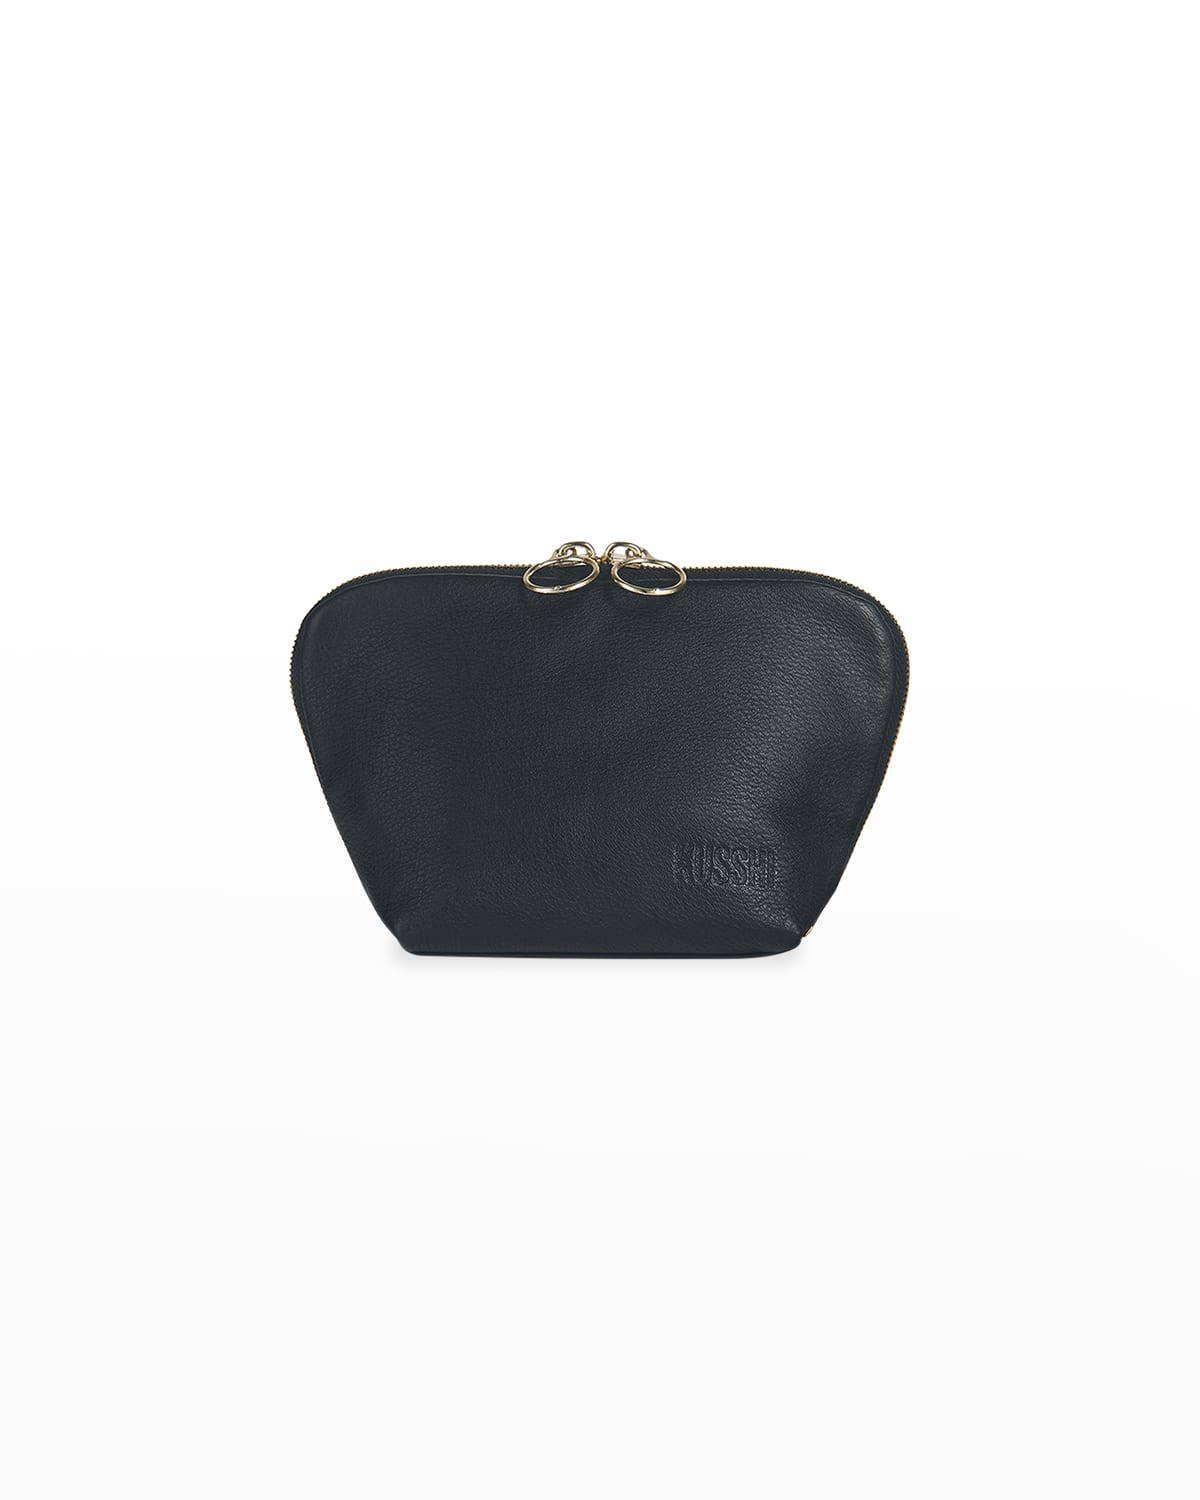 Everyday Leather Makeup Bag